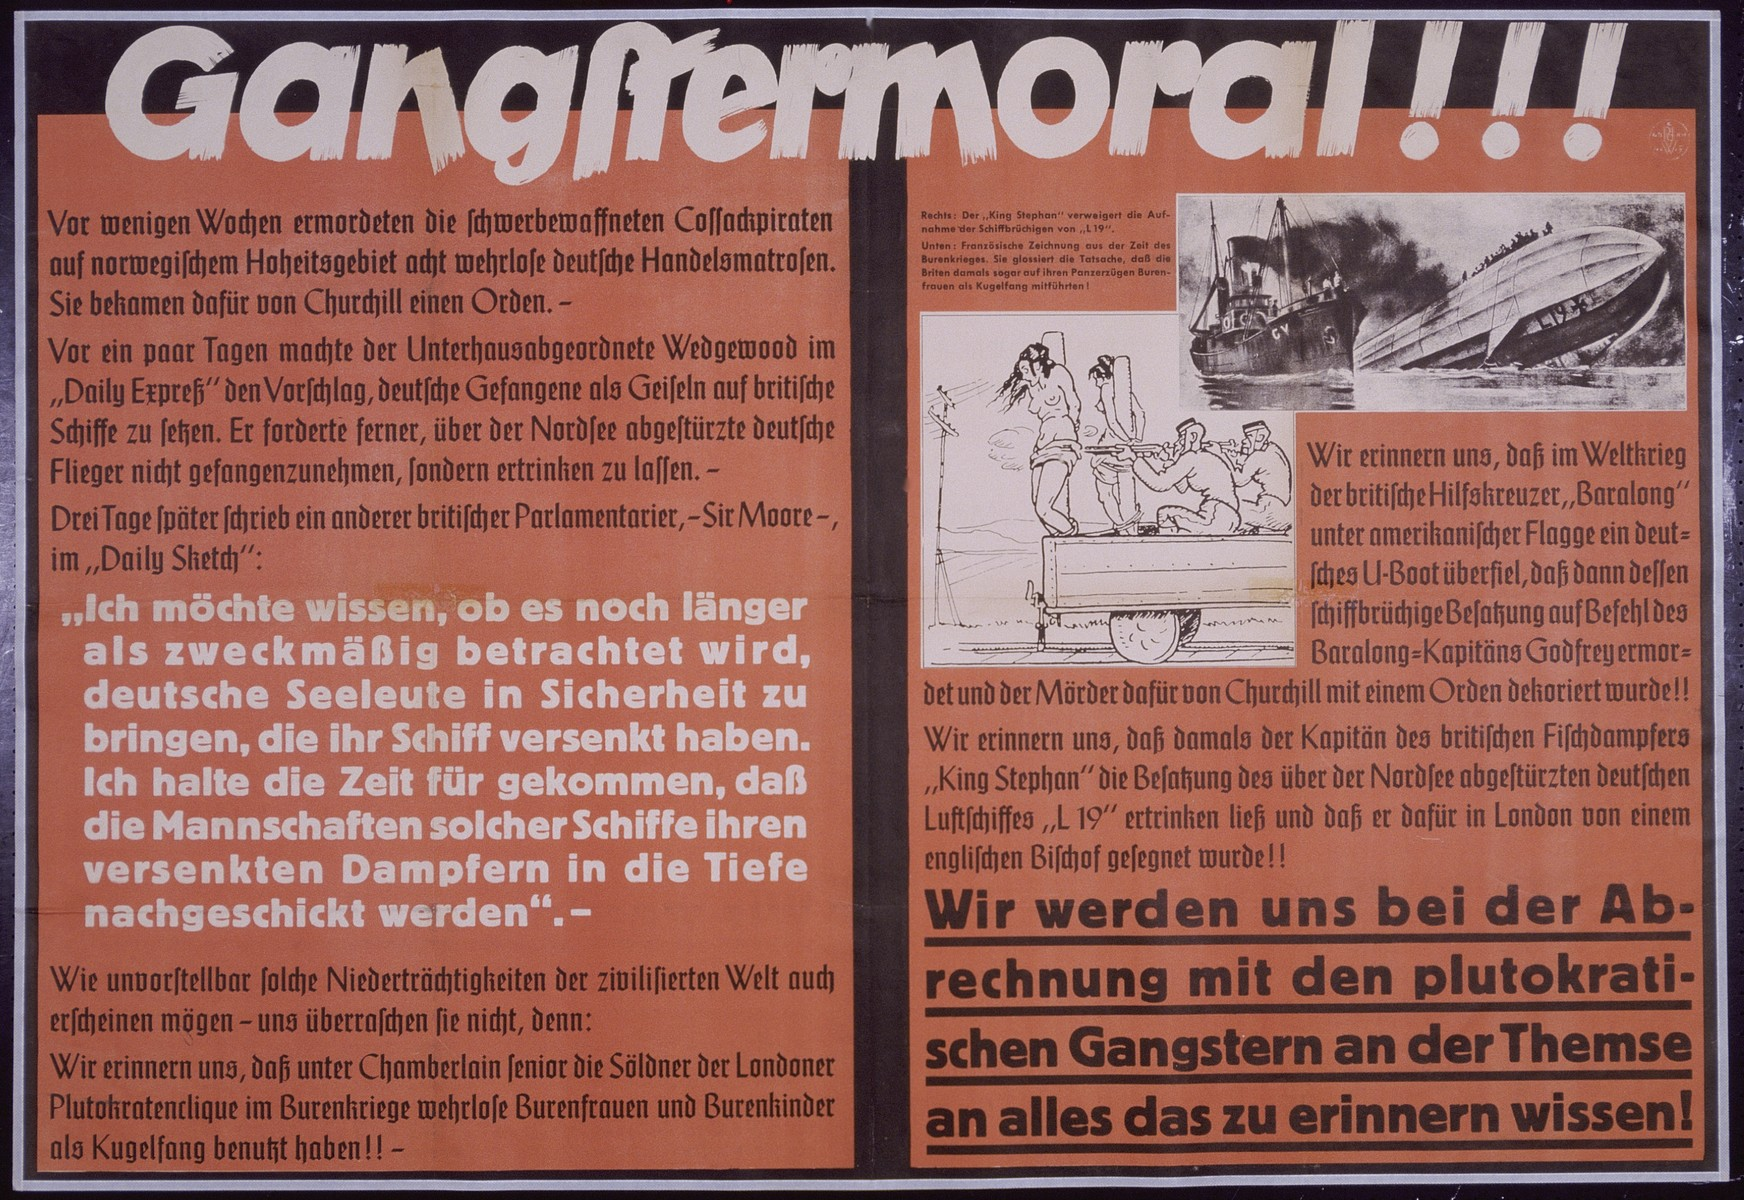 "Nazi propaganda poster entitled, ""Gangstermoral!"", issued by the ""Parole der Woche,"" a wall newspaper (Wandzeitung) published by the National Socialist Party propaganda office in Munich."